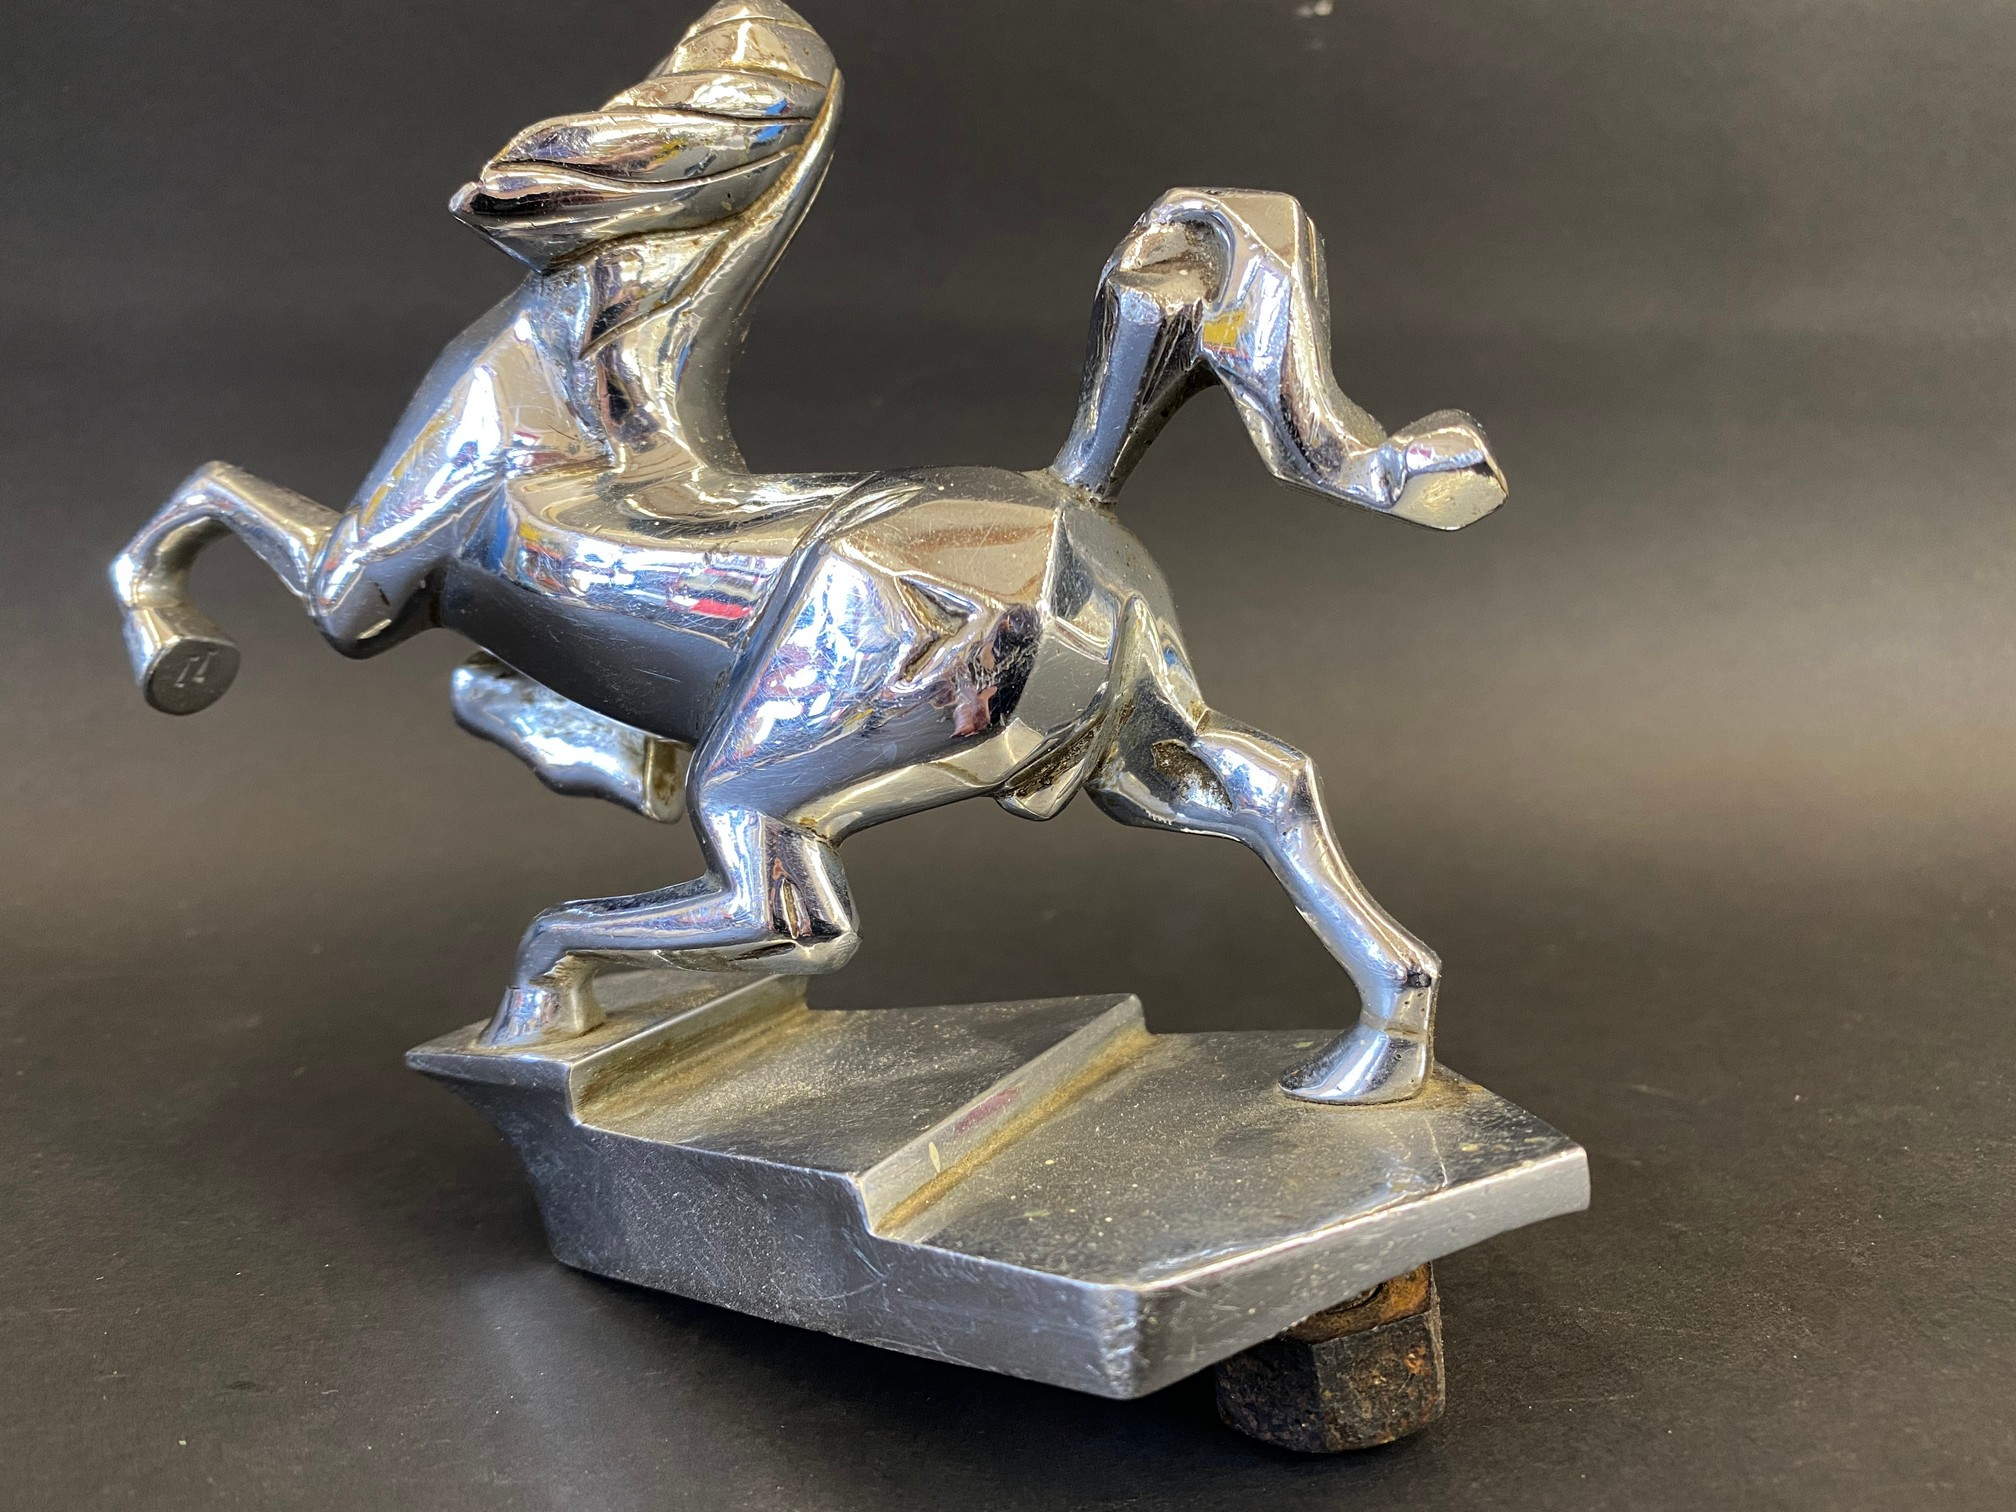 An unusual Art Deco chrome plated mascot in the form of a horse with its two front legs raised. - Image 2 of 2